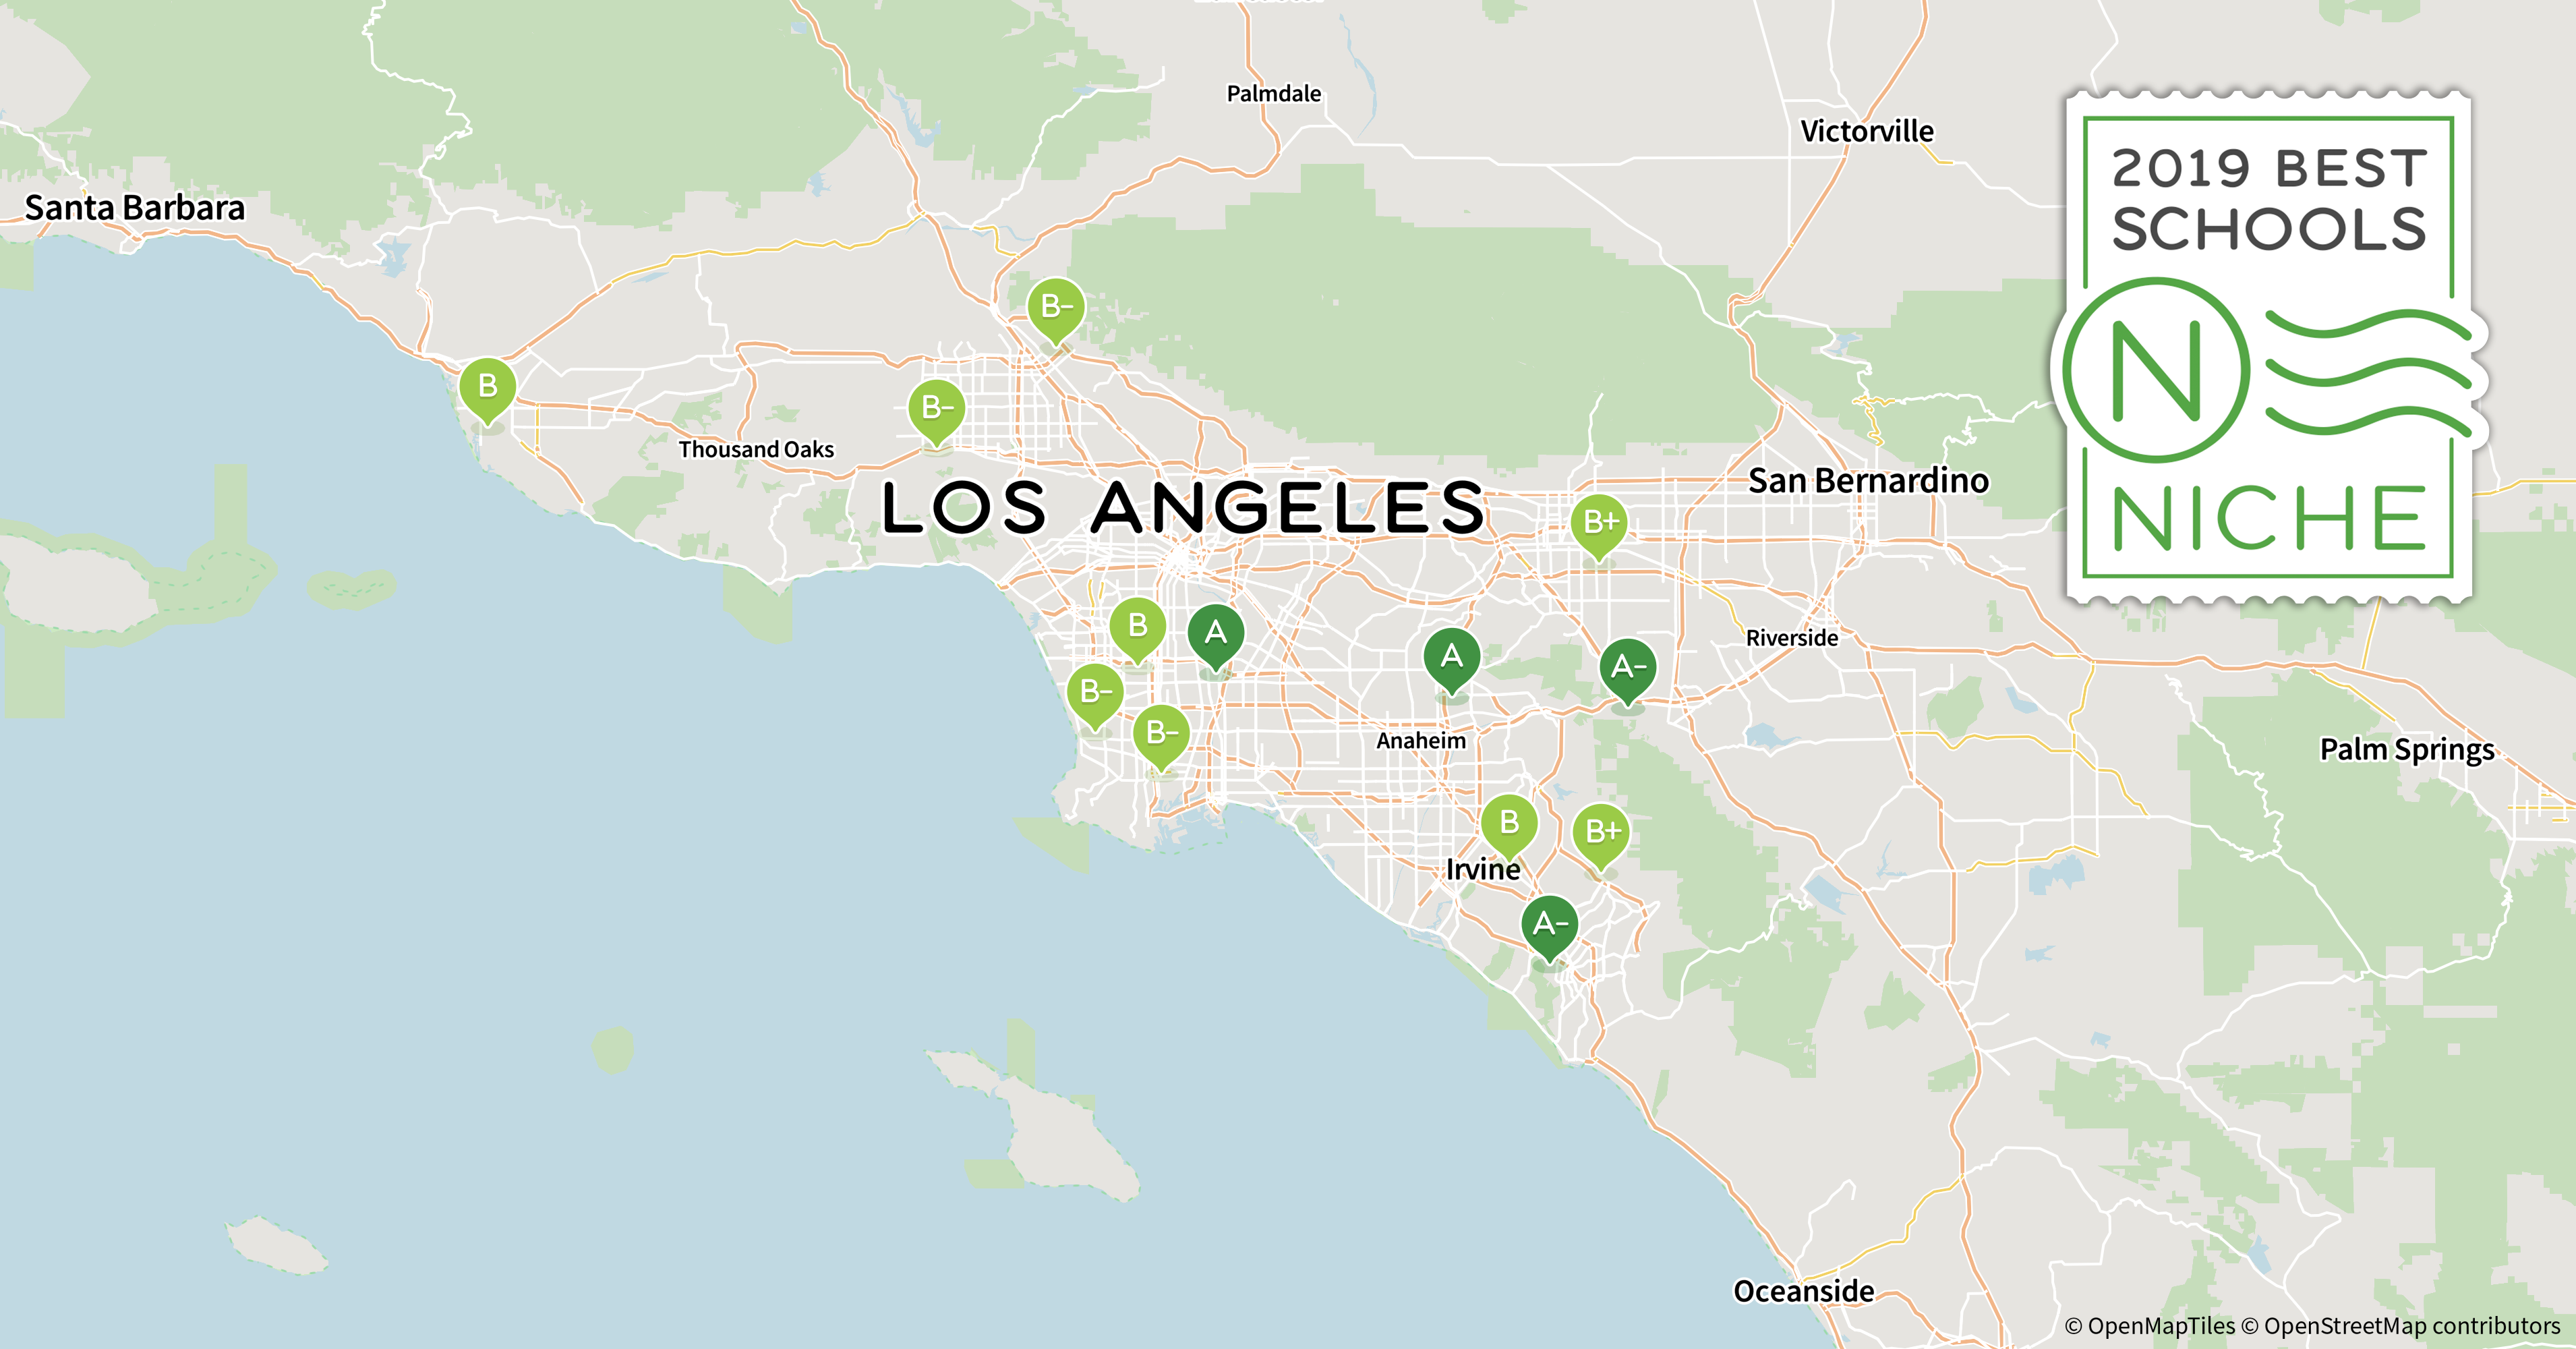 Los Angeles Subway Map 2016.2019 Best School Districts In The Los Angeles Area Niche